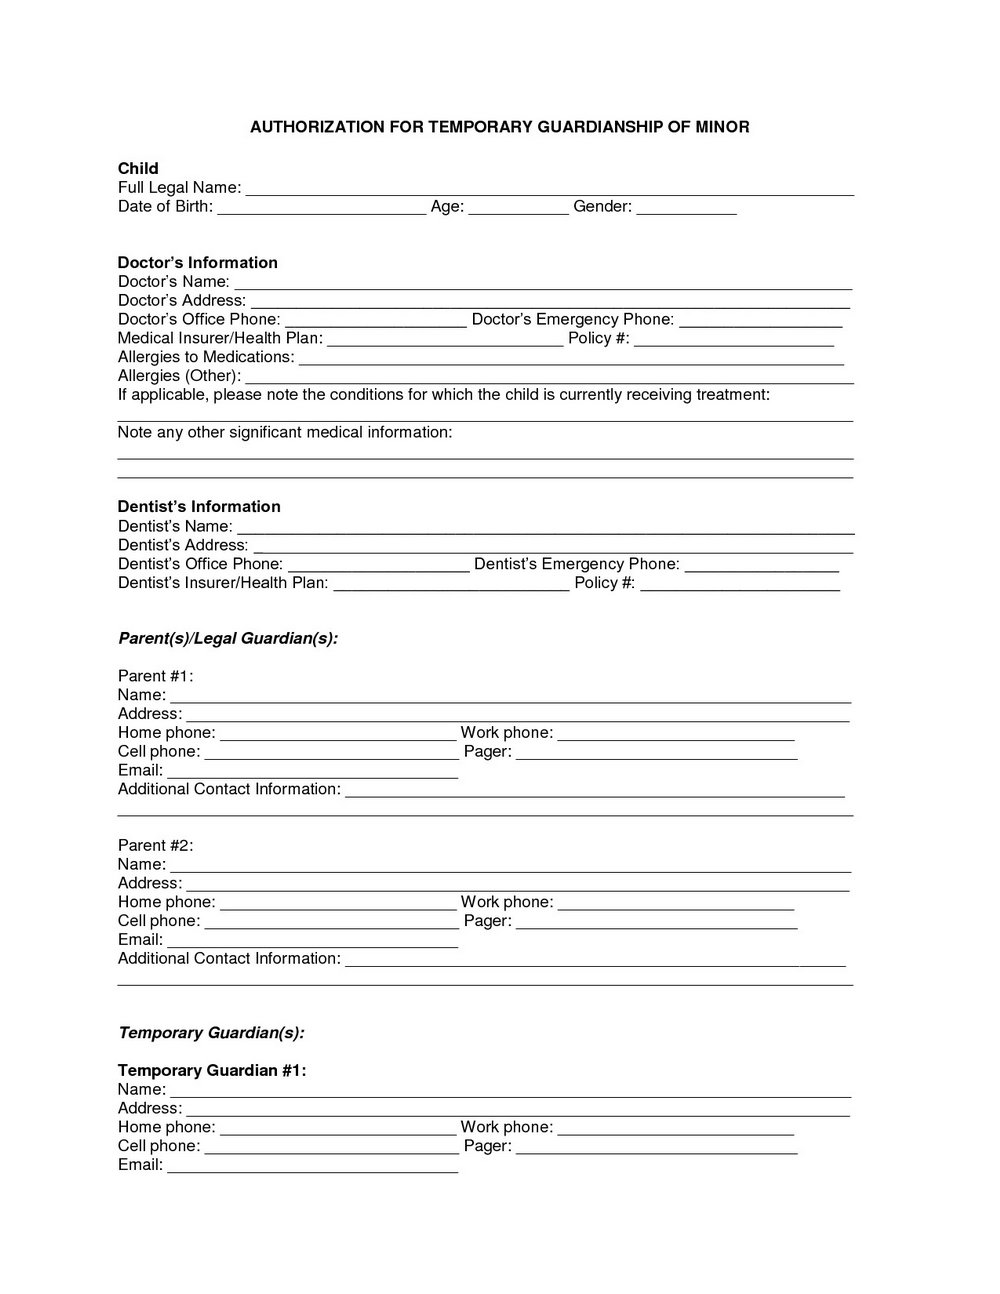 picture about Free Printable Temporary Guardianship Form identify Short-term Guardianship Sort Mn - Types #MzIzMg Resume Illustrations